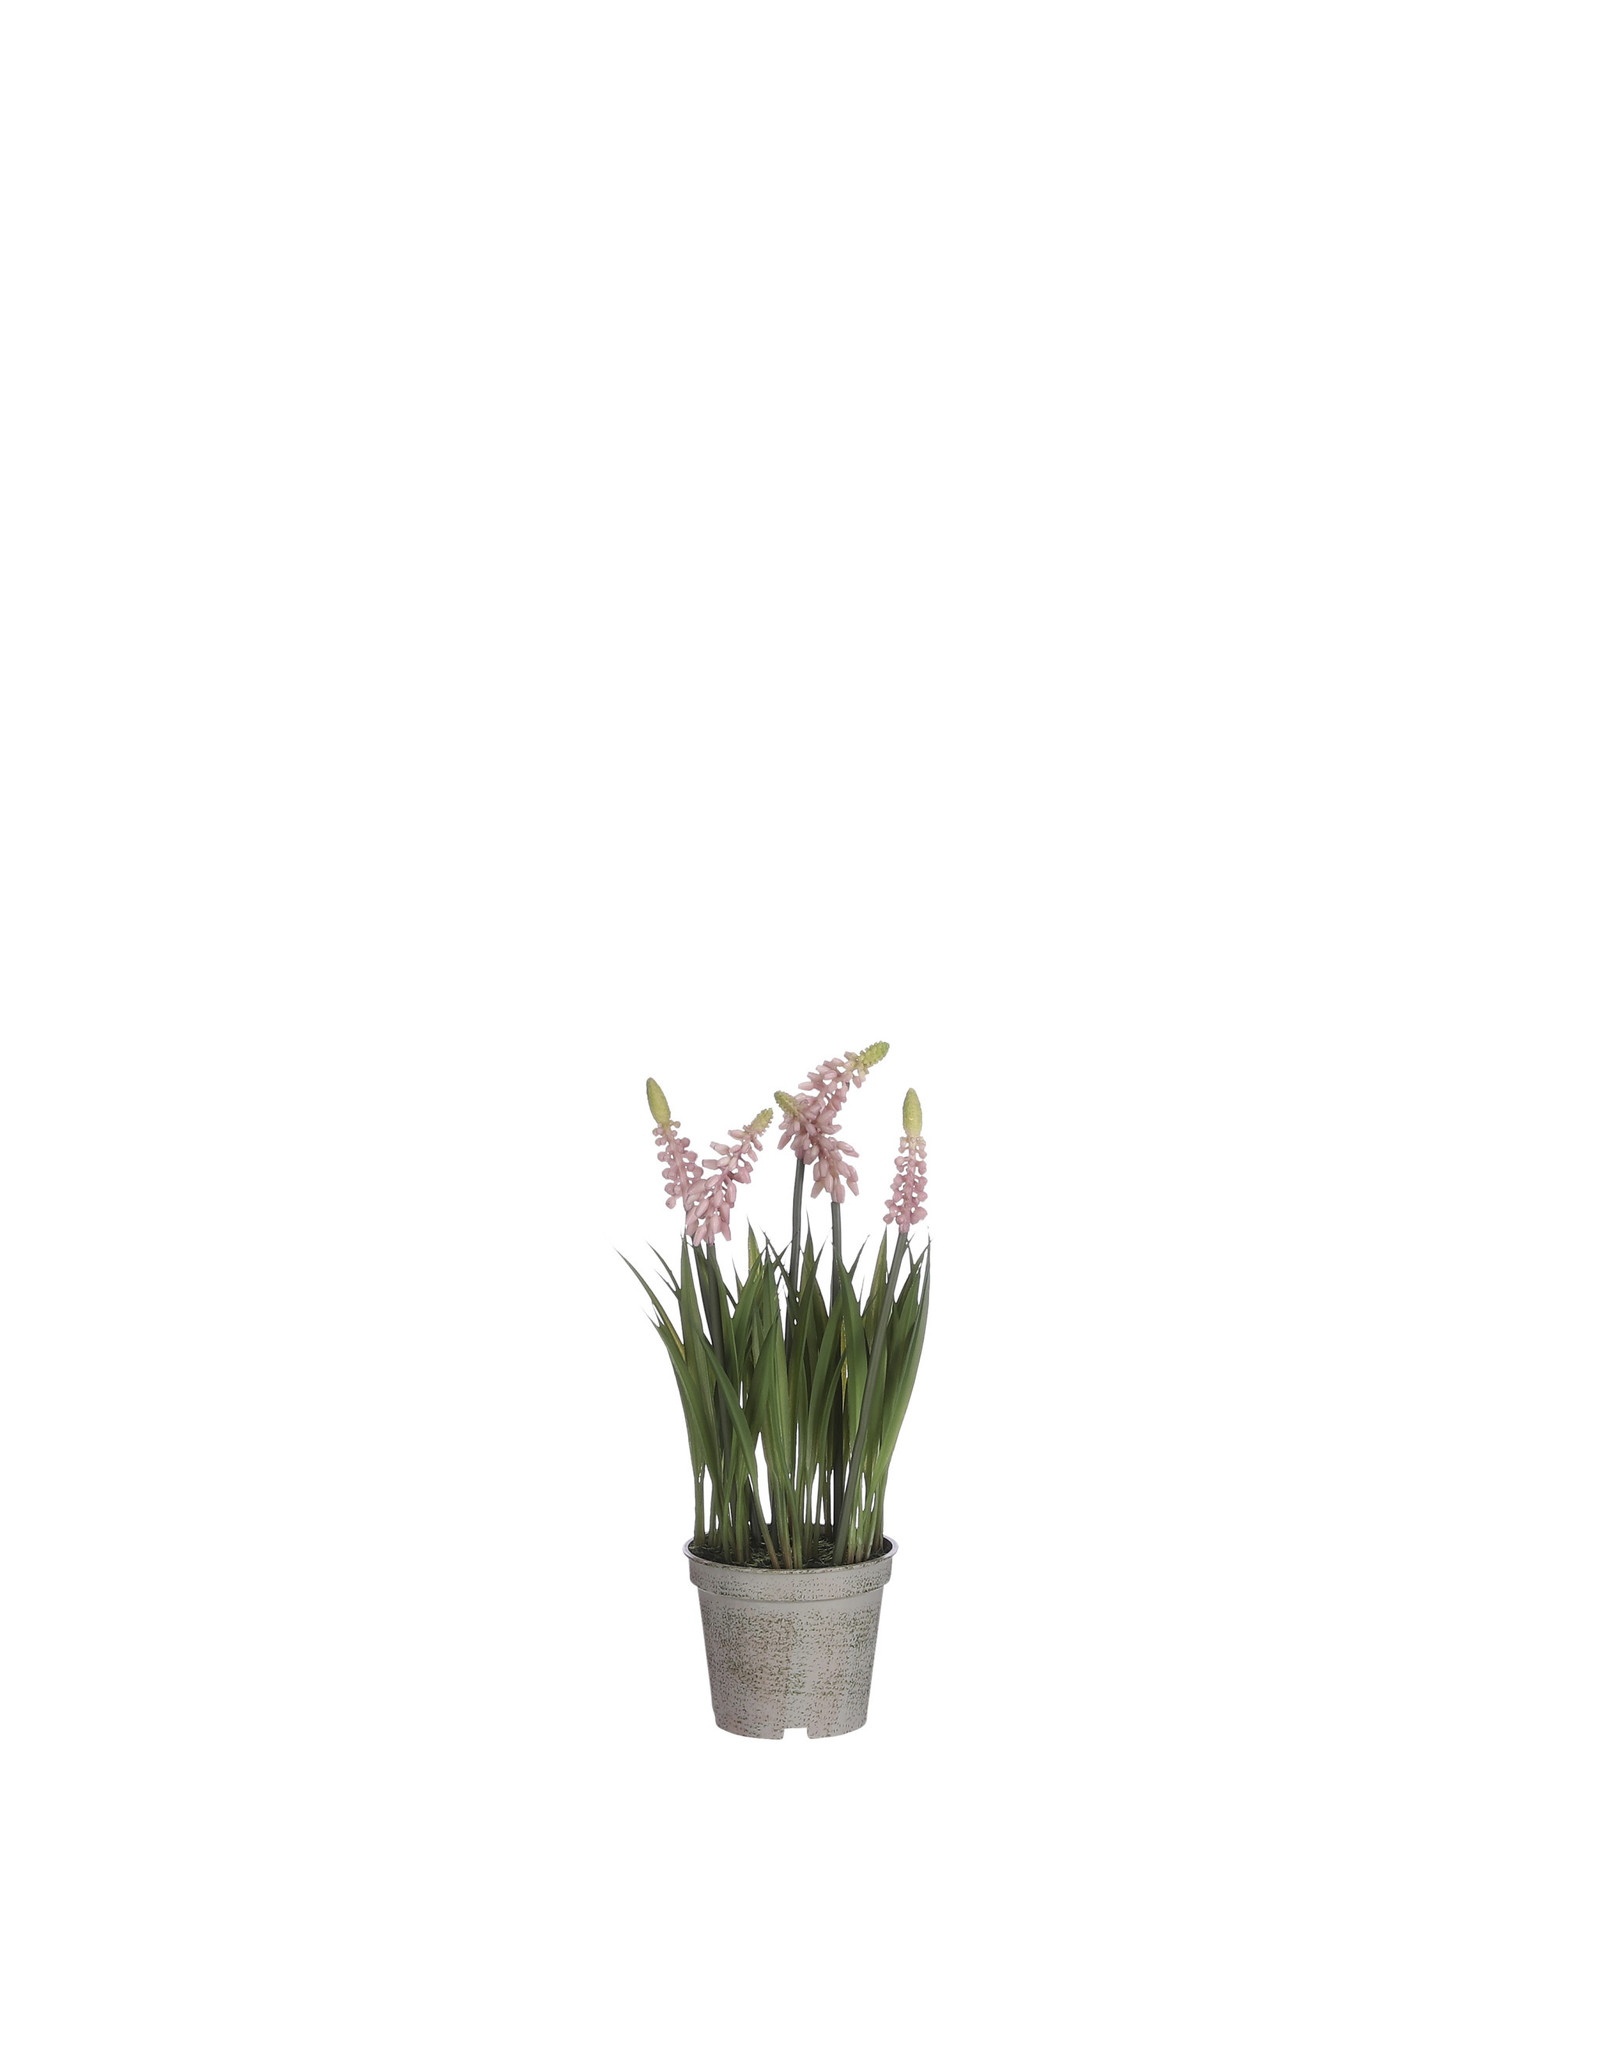 Mica Grape Hyacinth in Pot Pink - l27xd8.5cm